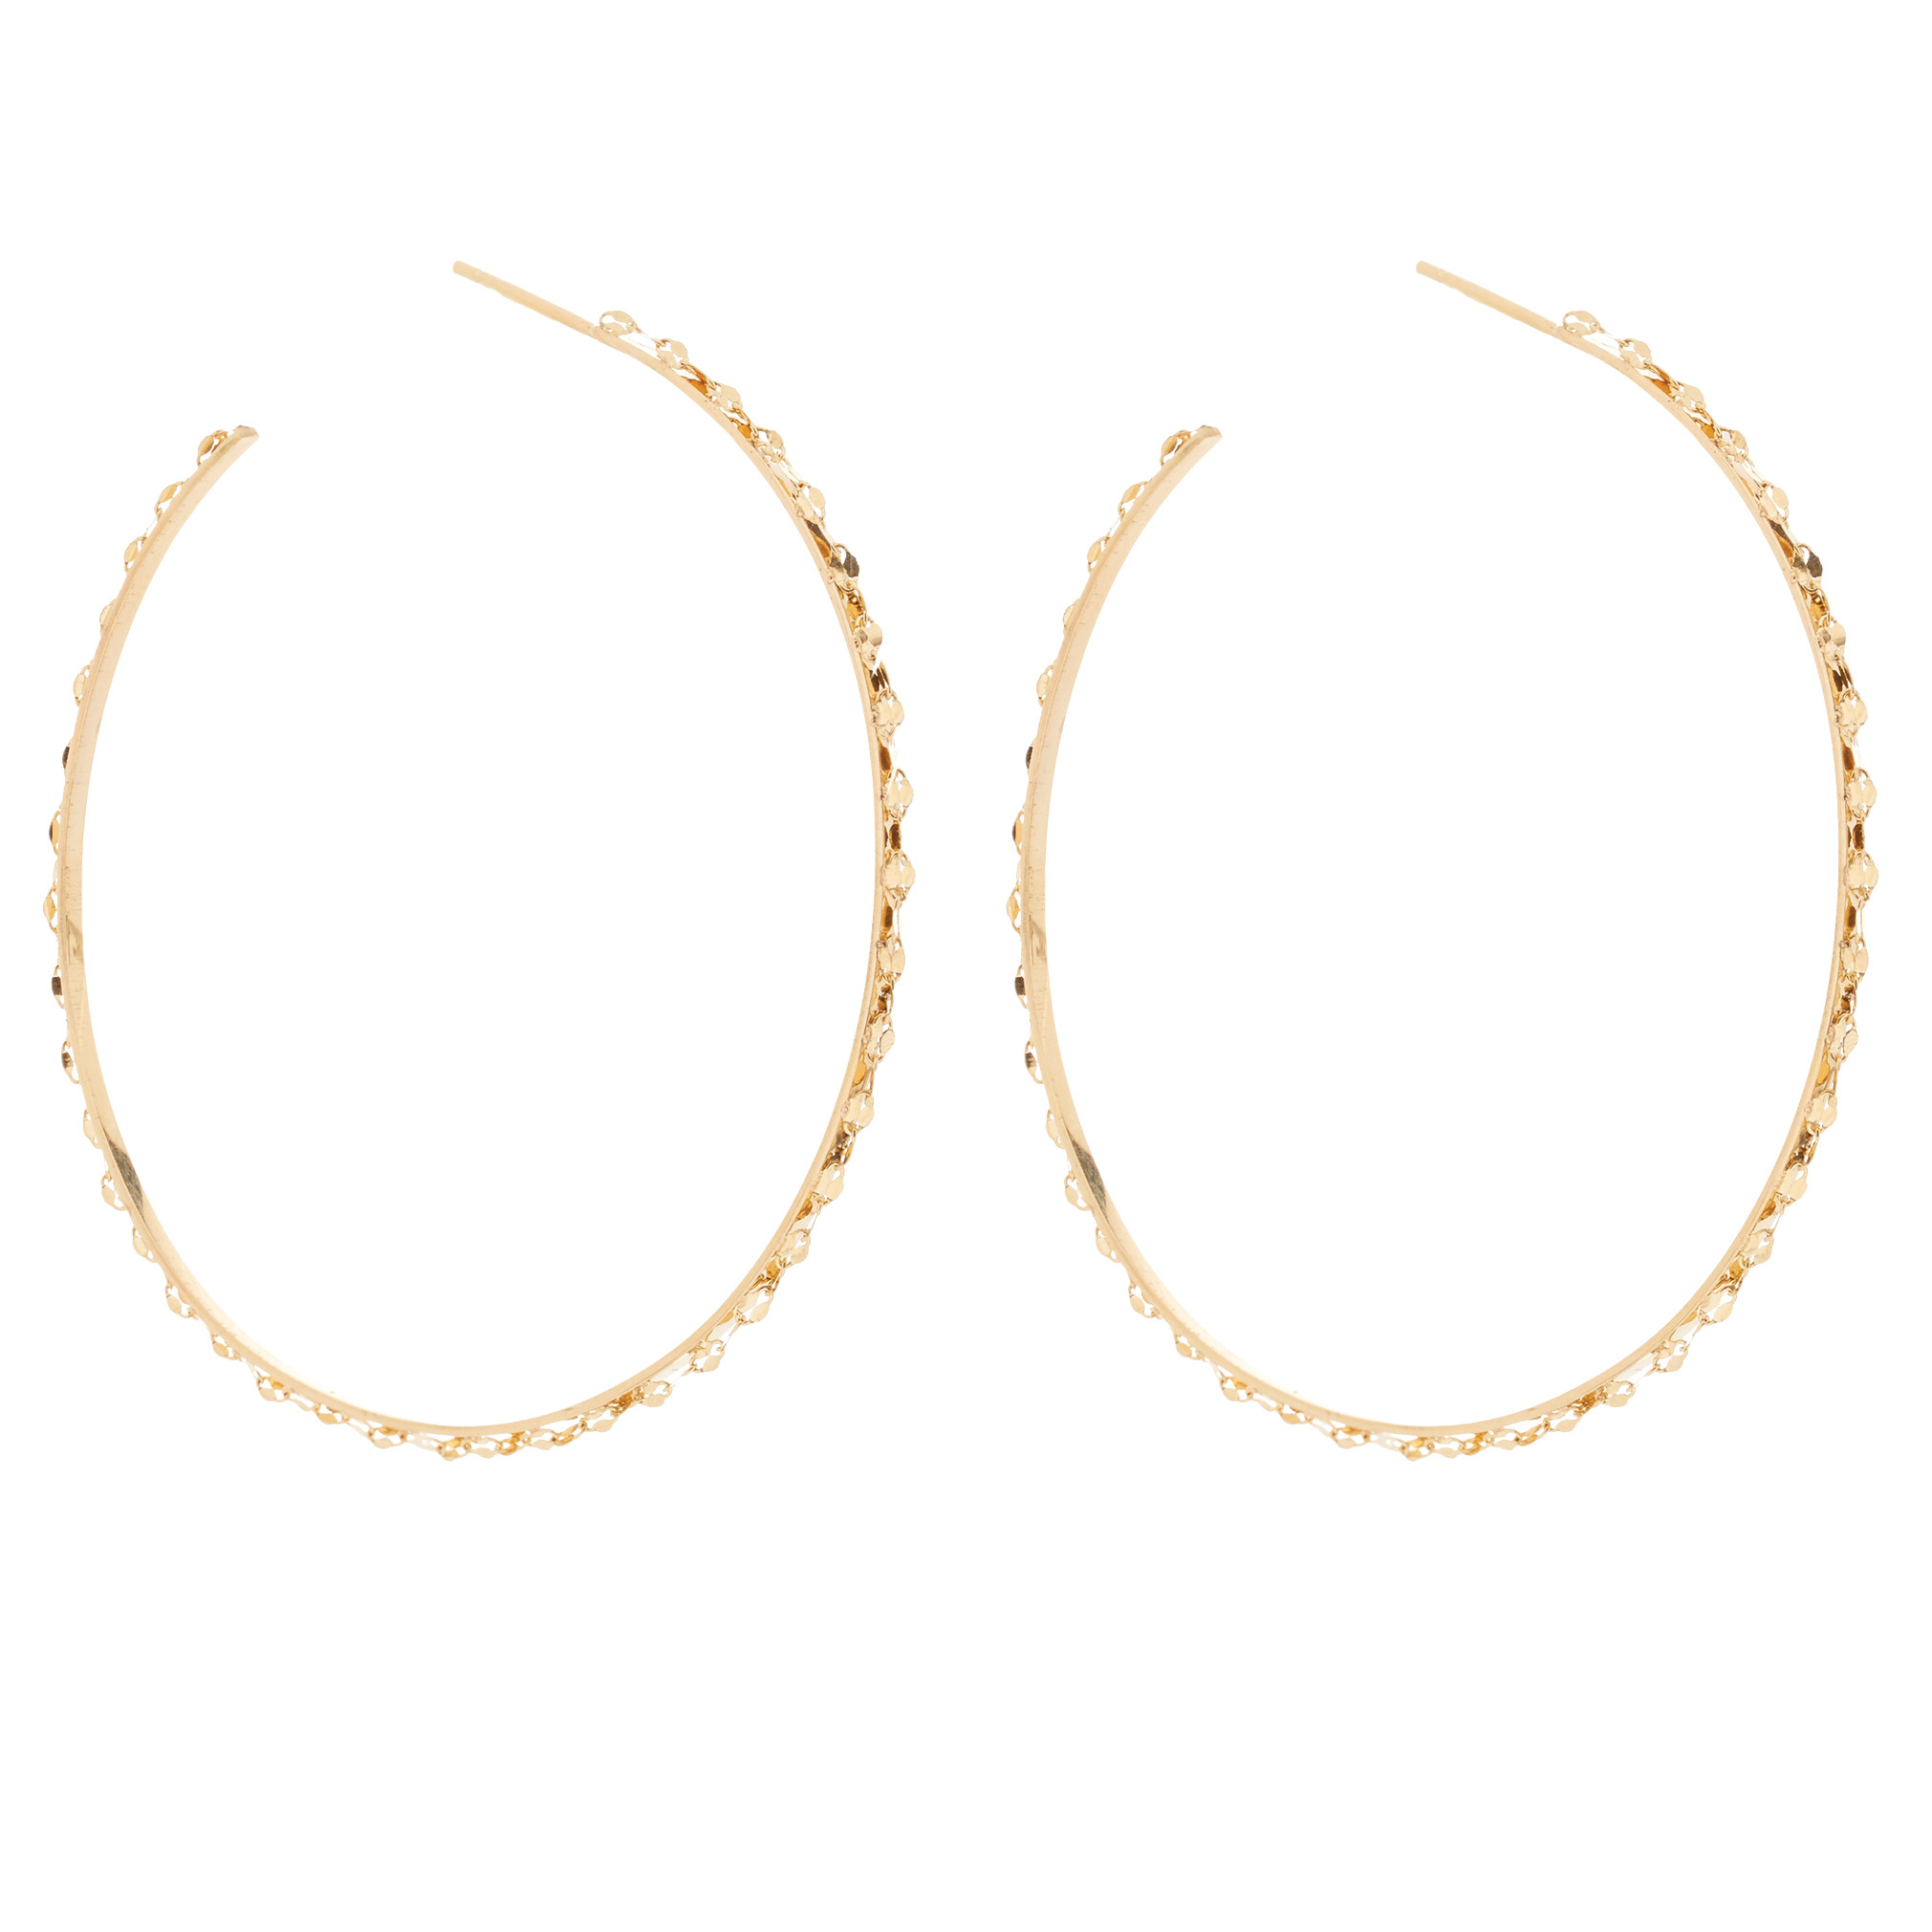 New Lana Jewelry Glam Sunrise Hoops Gallery Image